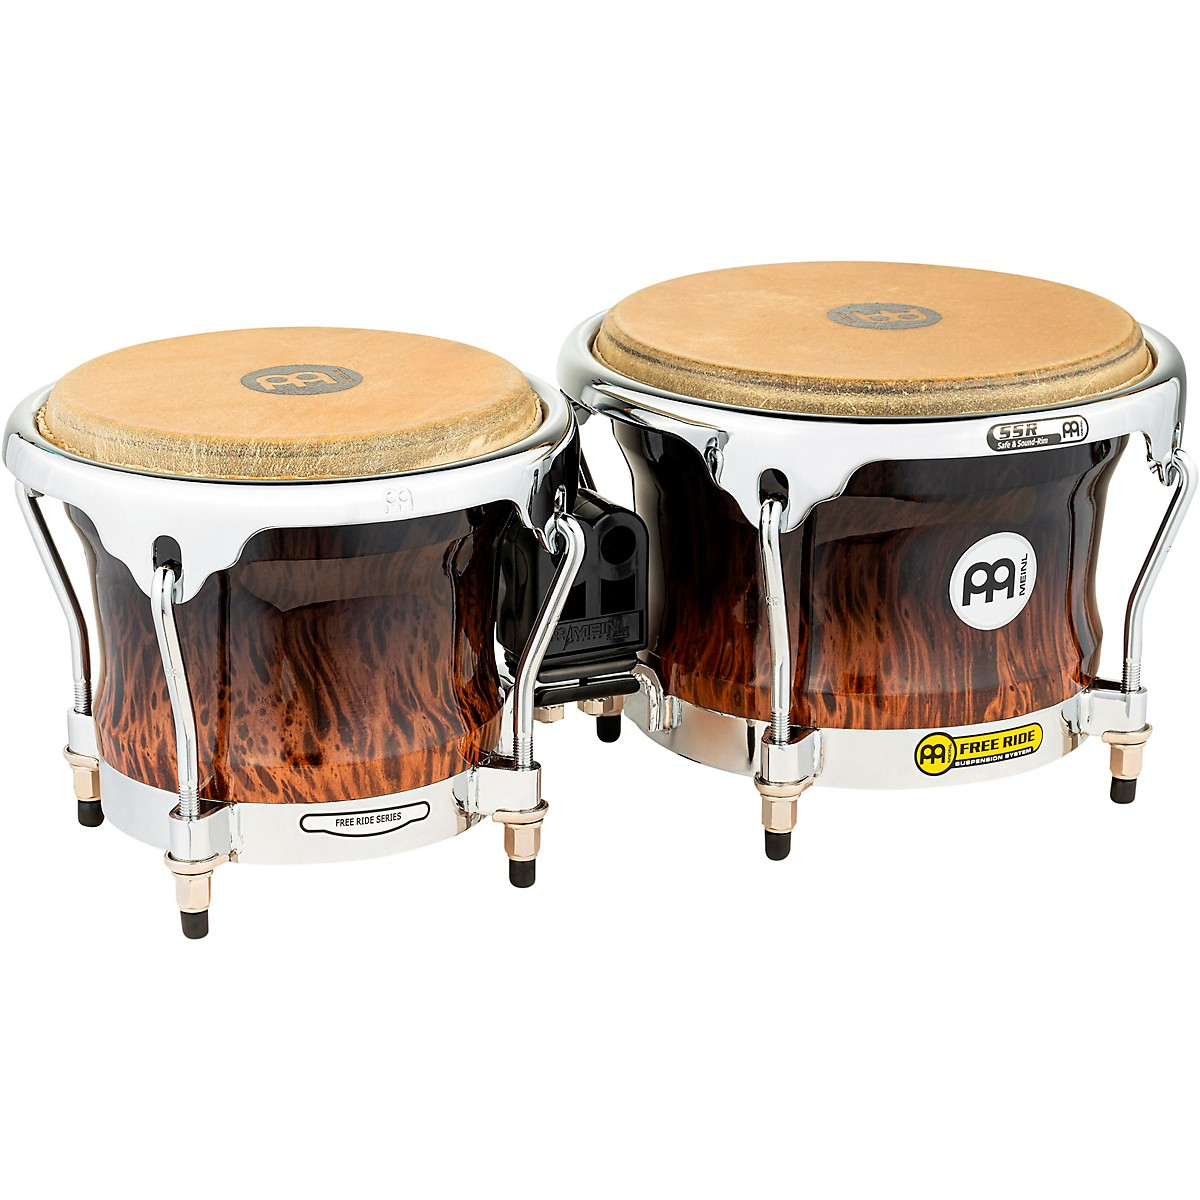 Meinl Free Ride Series High Gloss Wood Bongos